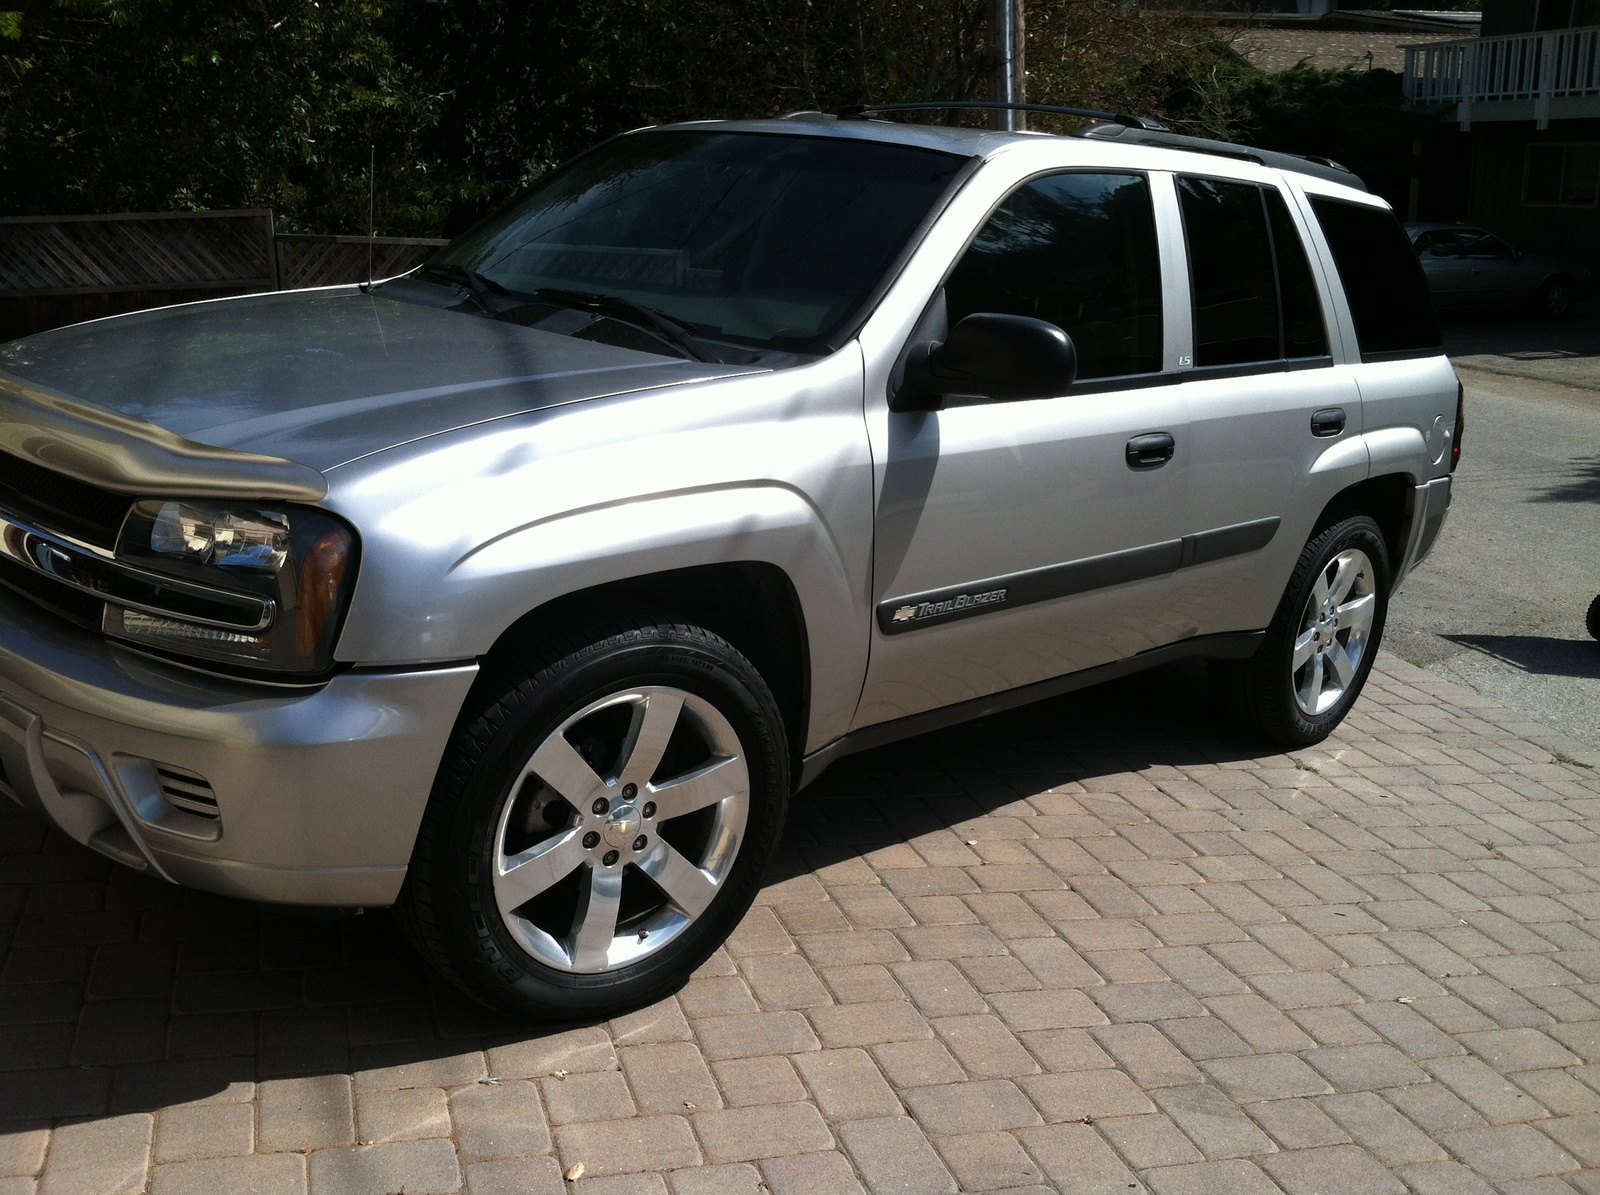 used chevrolet trailblazer recalls automotivecom autos. Black Bedroom Furniture Sets. Home Design Ideas